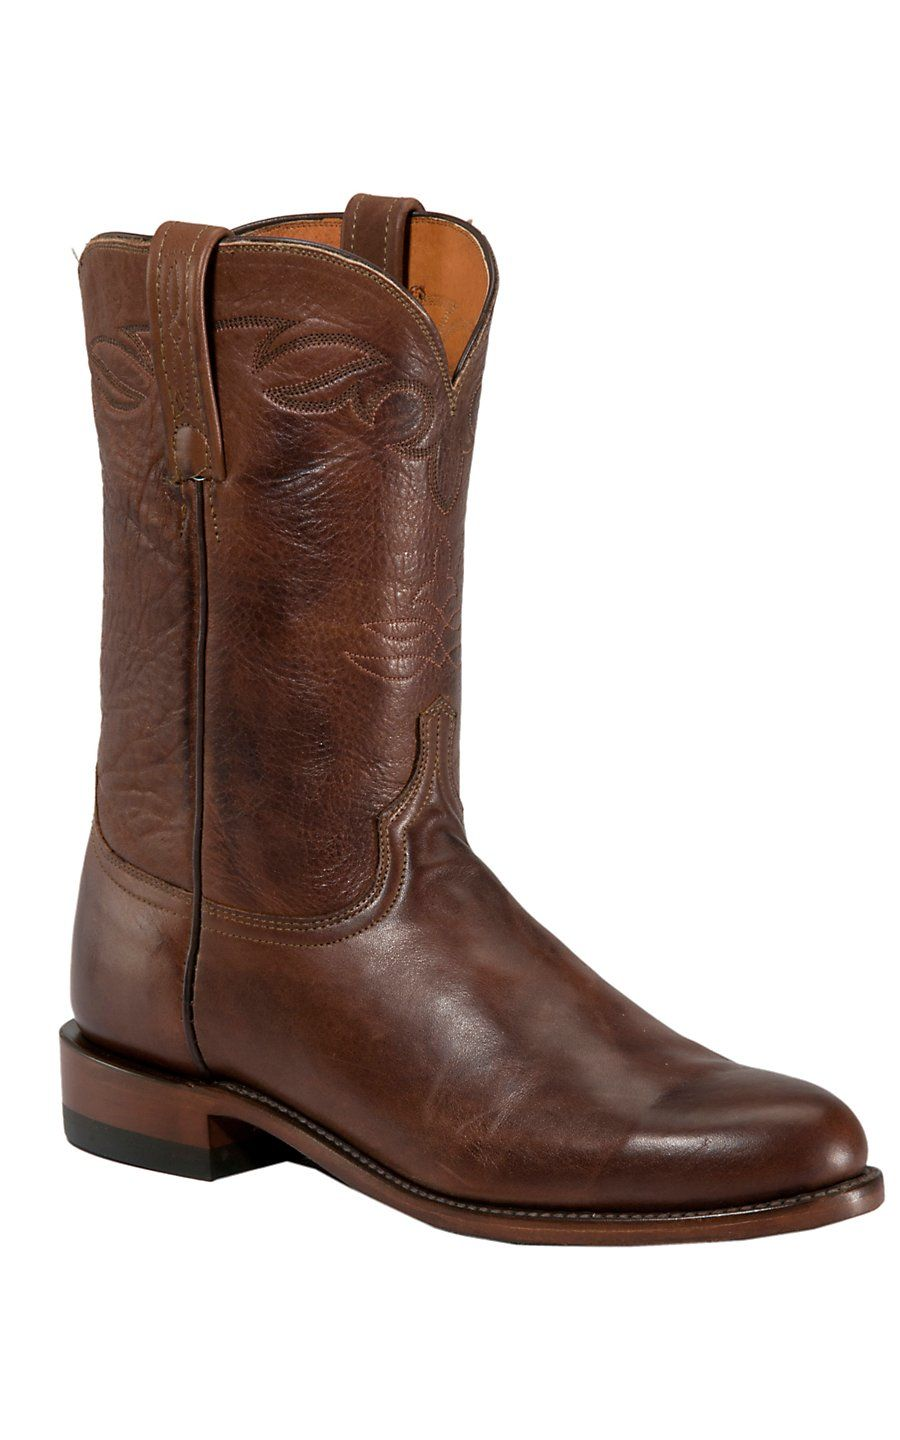 cc2500257f1 Lucchese® 1883™ Men's Tan Ranch Hand Roper Boot | Cavender's Boot ...